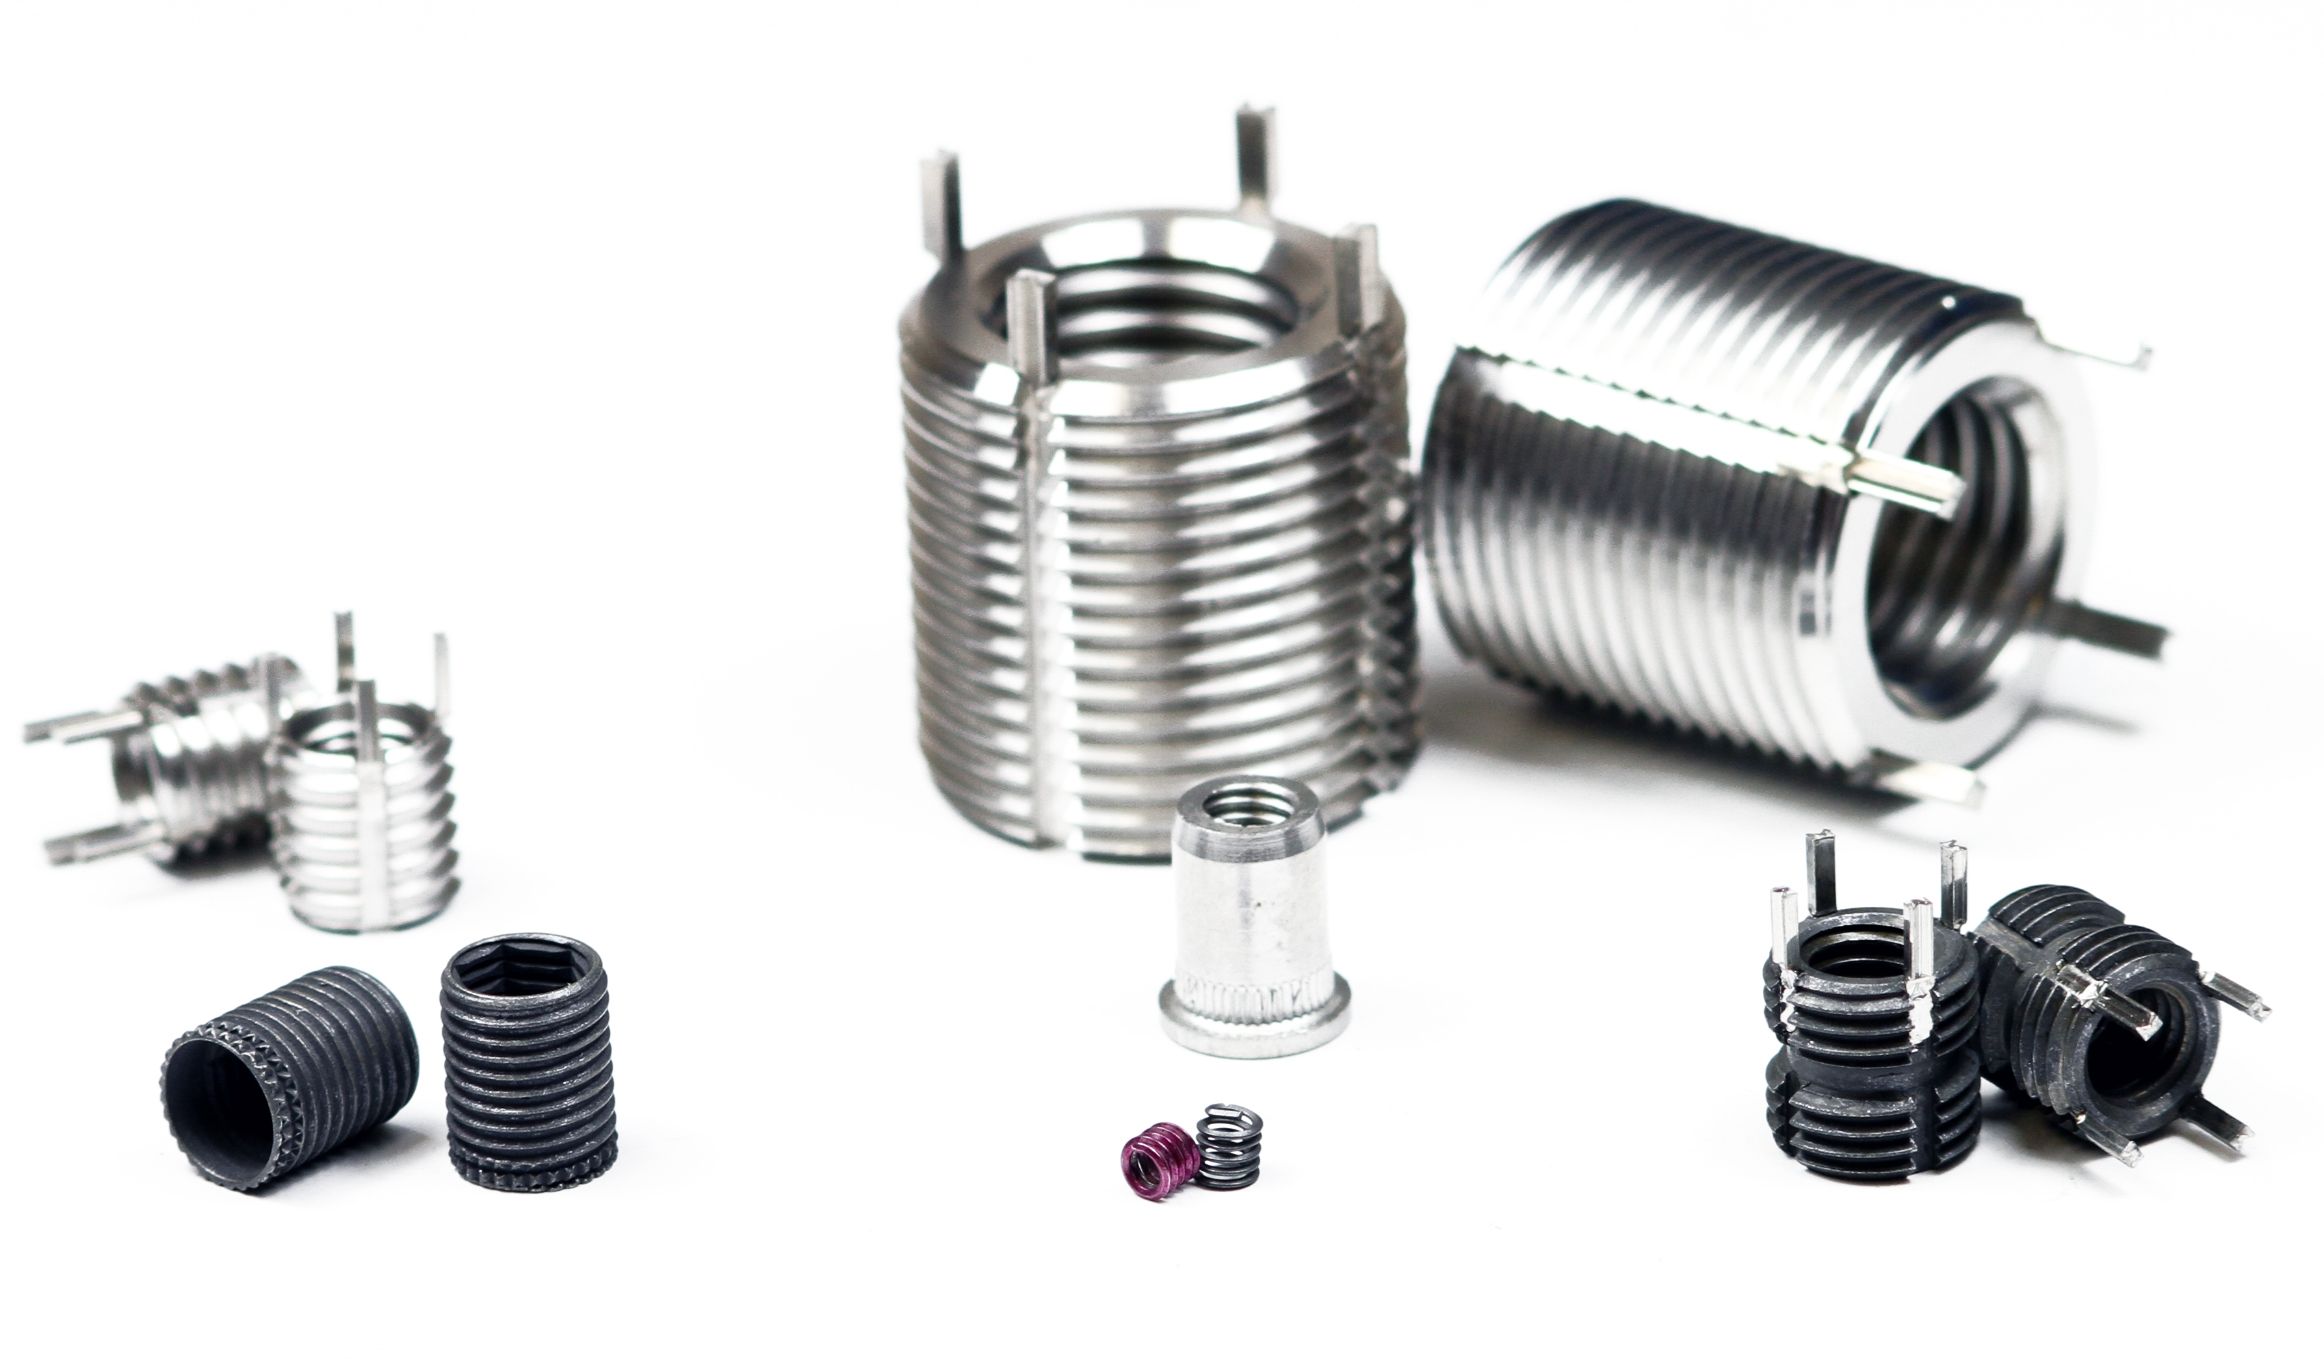 Threaded, Wire Thread & Keensert Inserts - metric & imperial